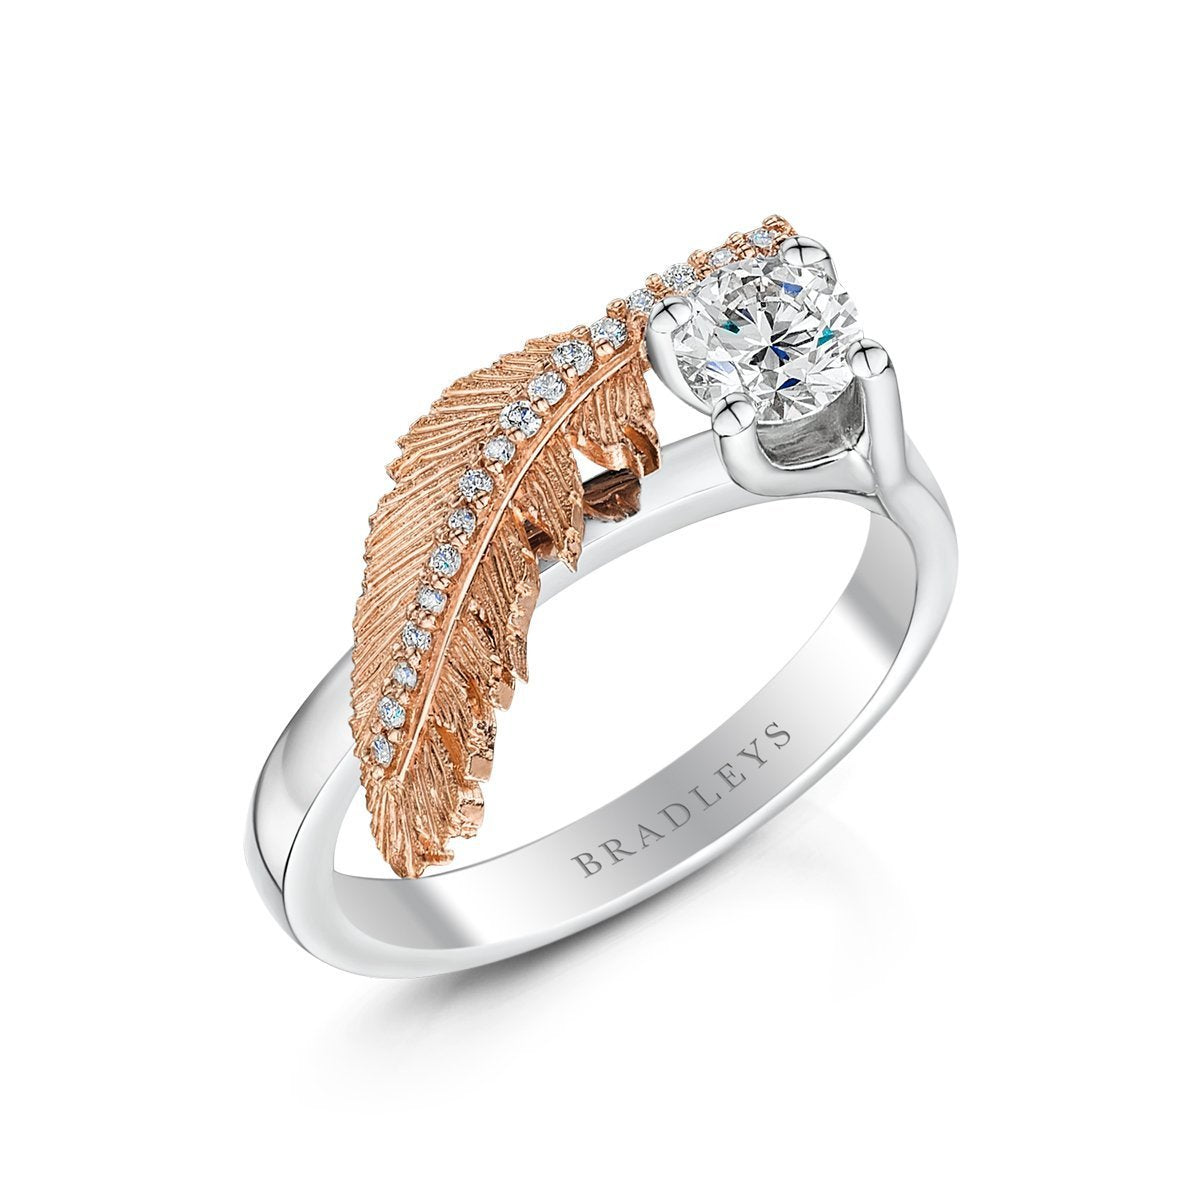 Angelic Engagement Ring